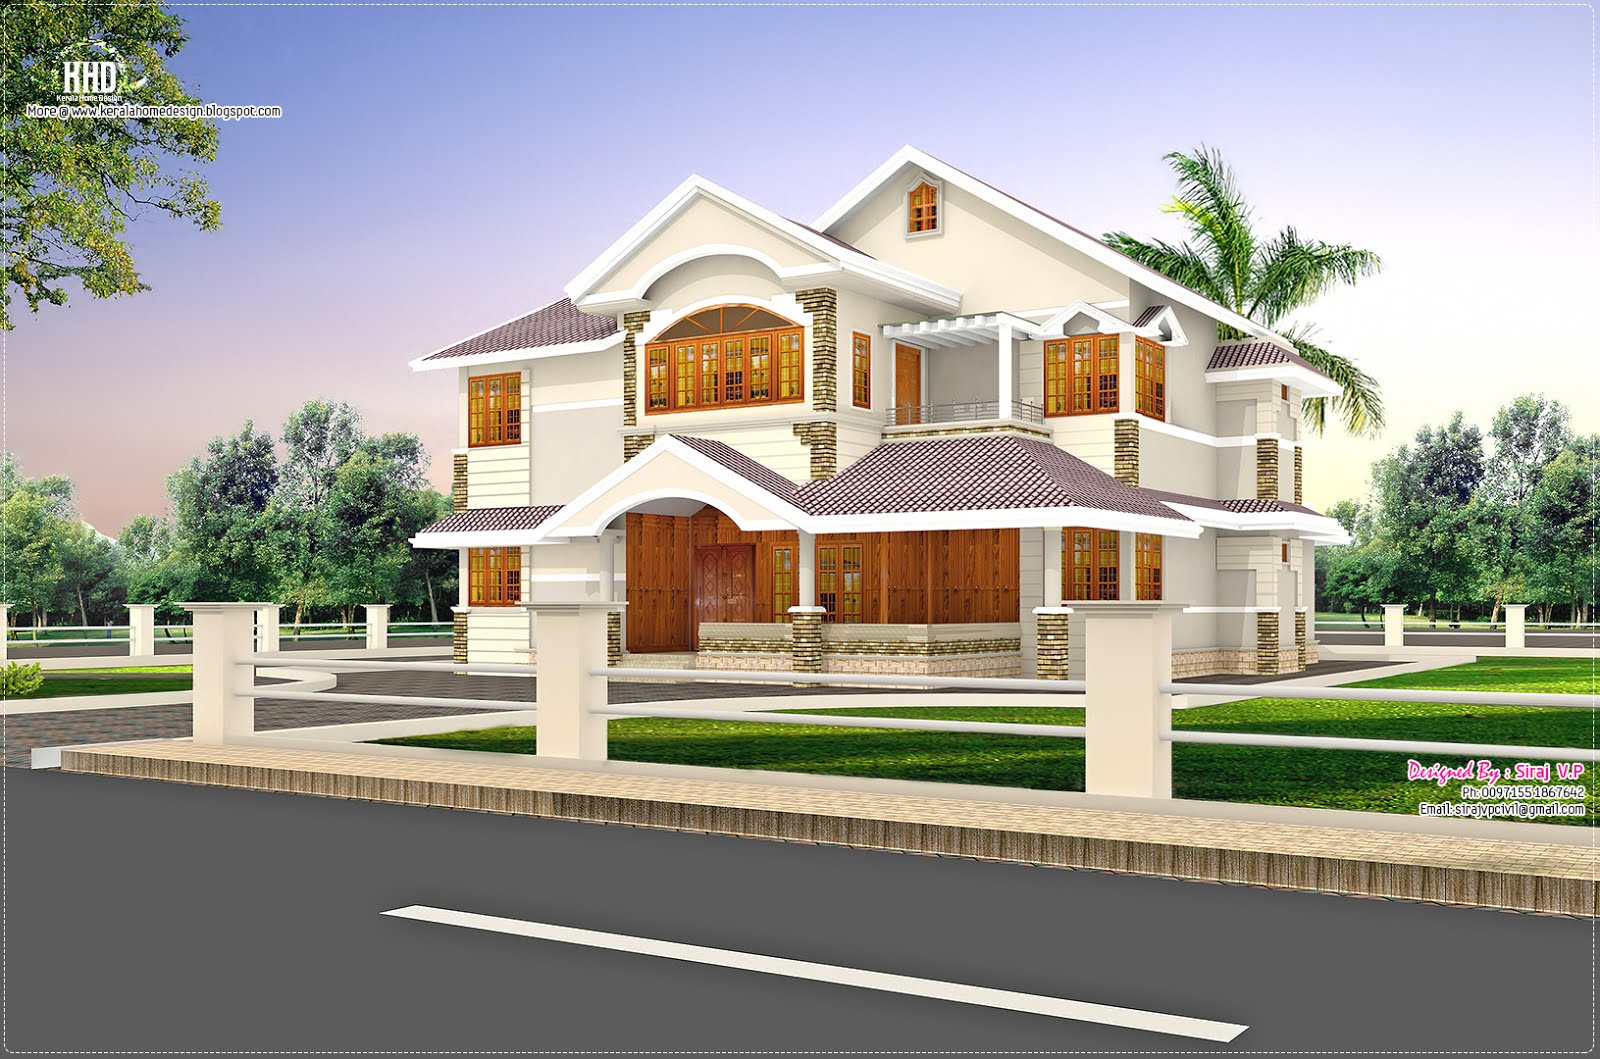 Home design 3d House designer 3d